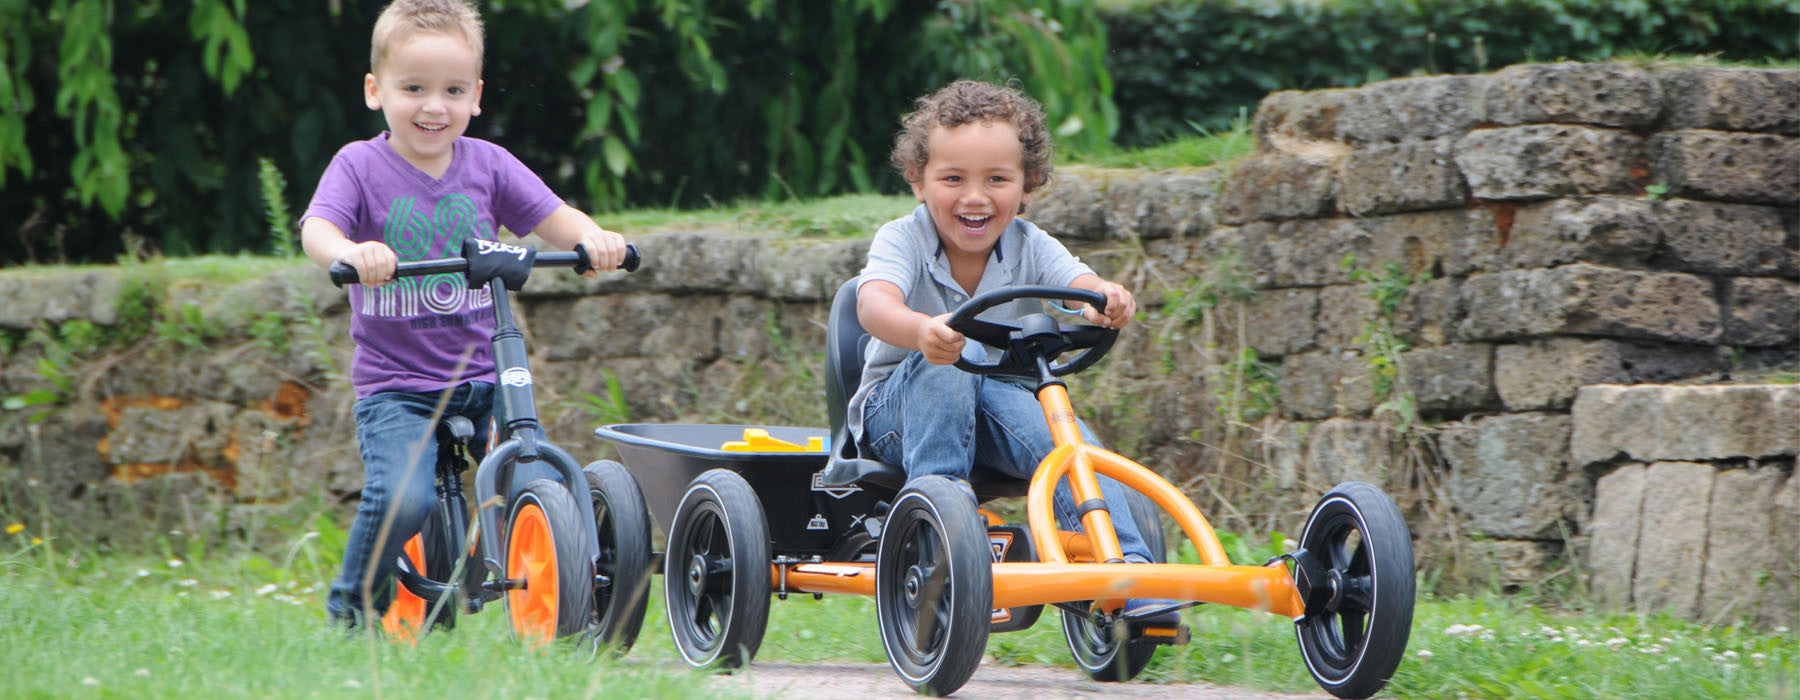 Encourage Outdoor Play And Adventure With Berg Pedal Kart For Kids